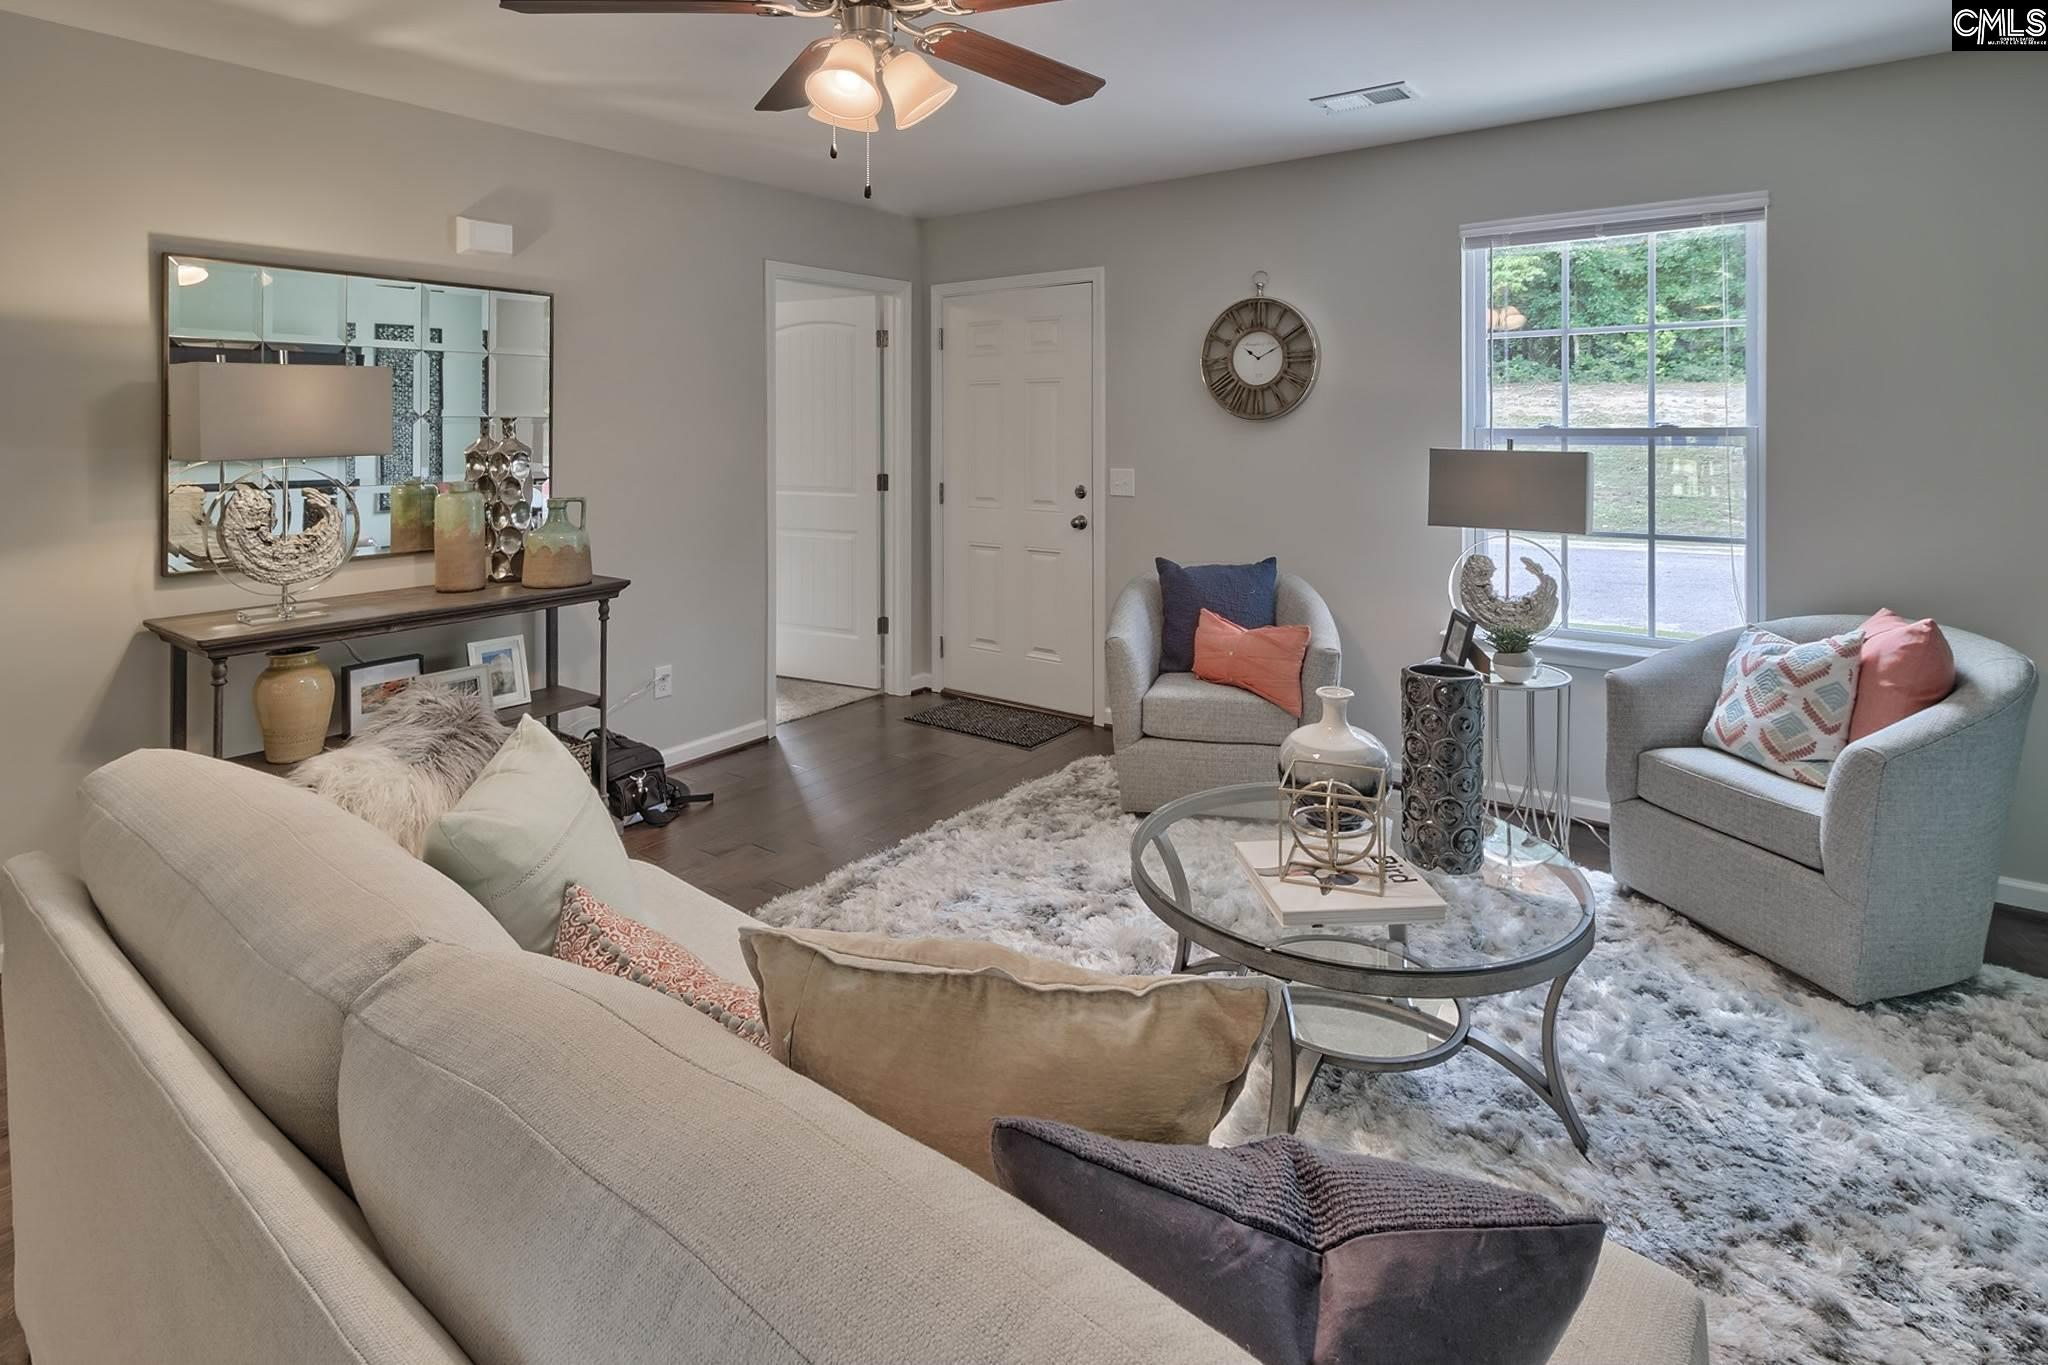 222 Old Steine Lot Drive Columbia, SC 29223